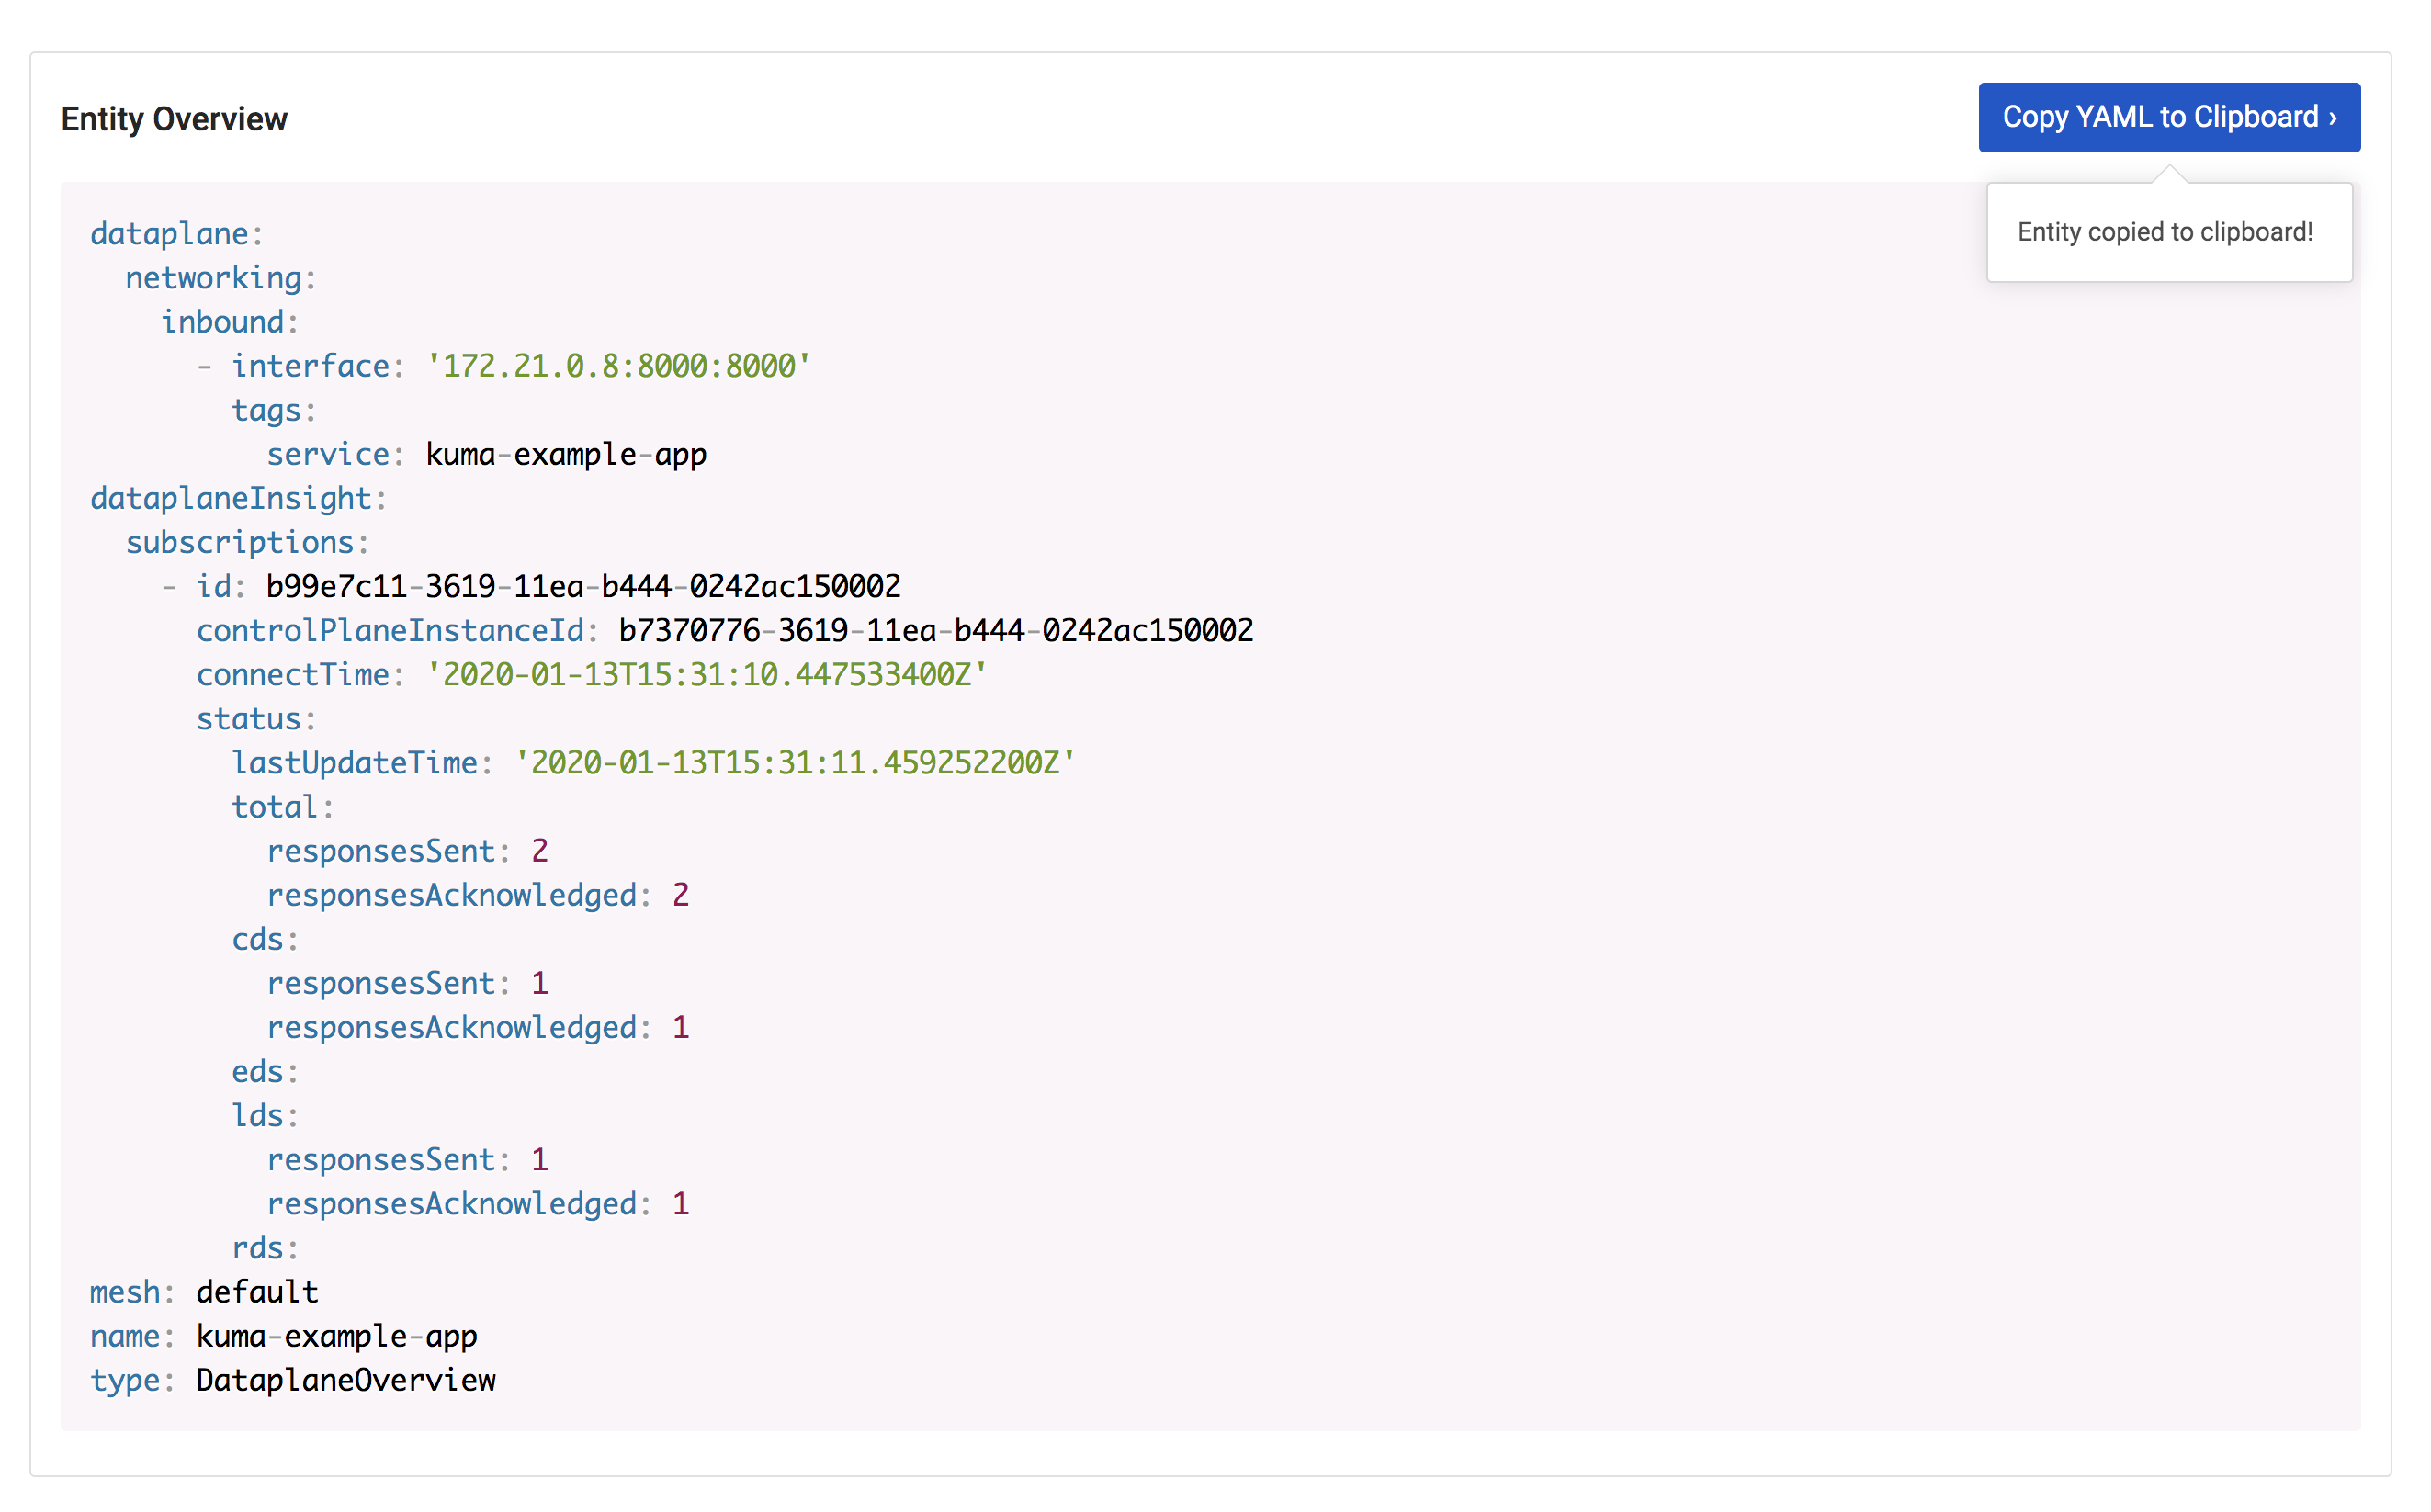 A screenshot of the YAML to clipboard feature in the Kuma GUI